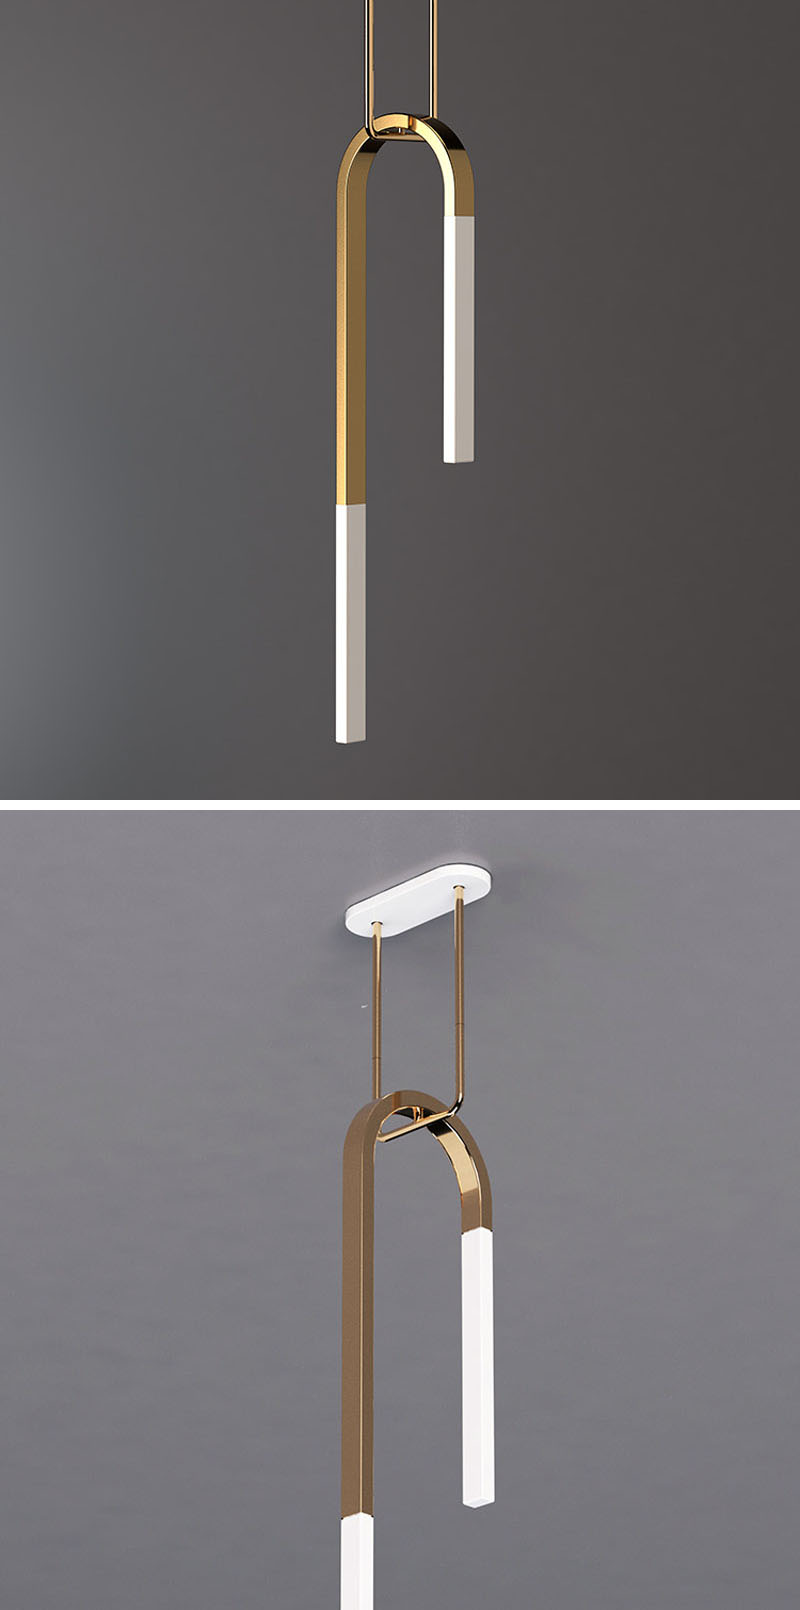 minimalist lighting. The Minimalist Lighting Collection Has Translucent Porcelain Arms That Are Supported By Suspended Trapeze.